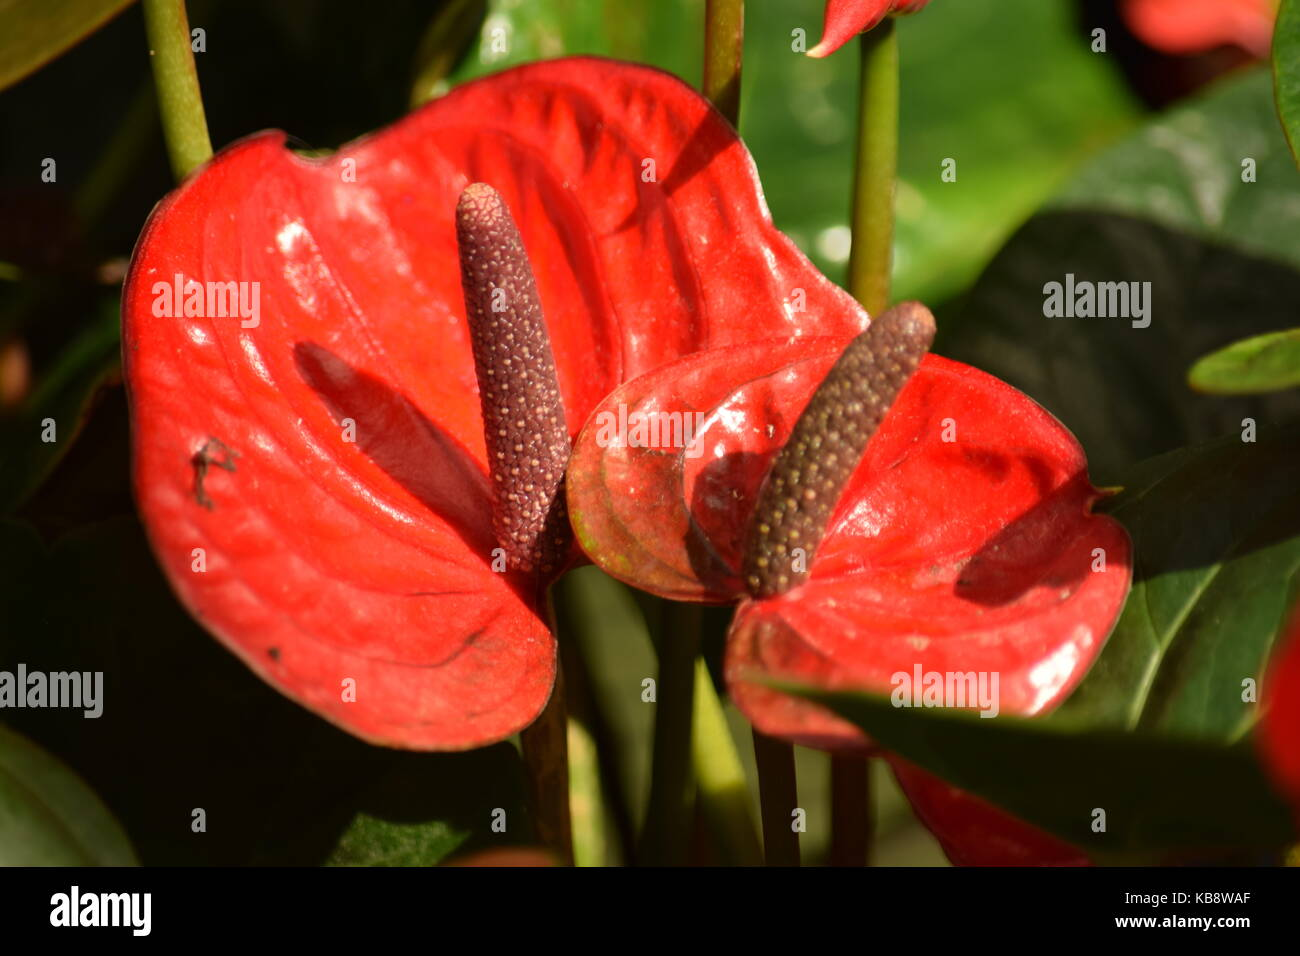 Red peace lily stock photos red peace lily stock images alamy peace lily red stock image izmirmasajfo